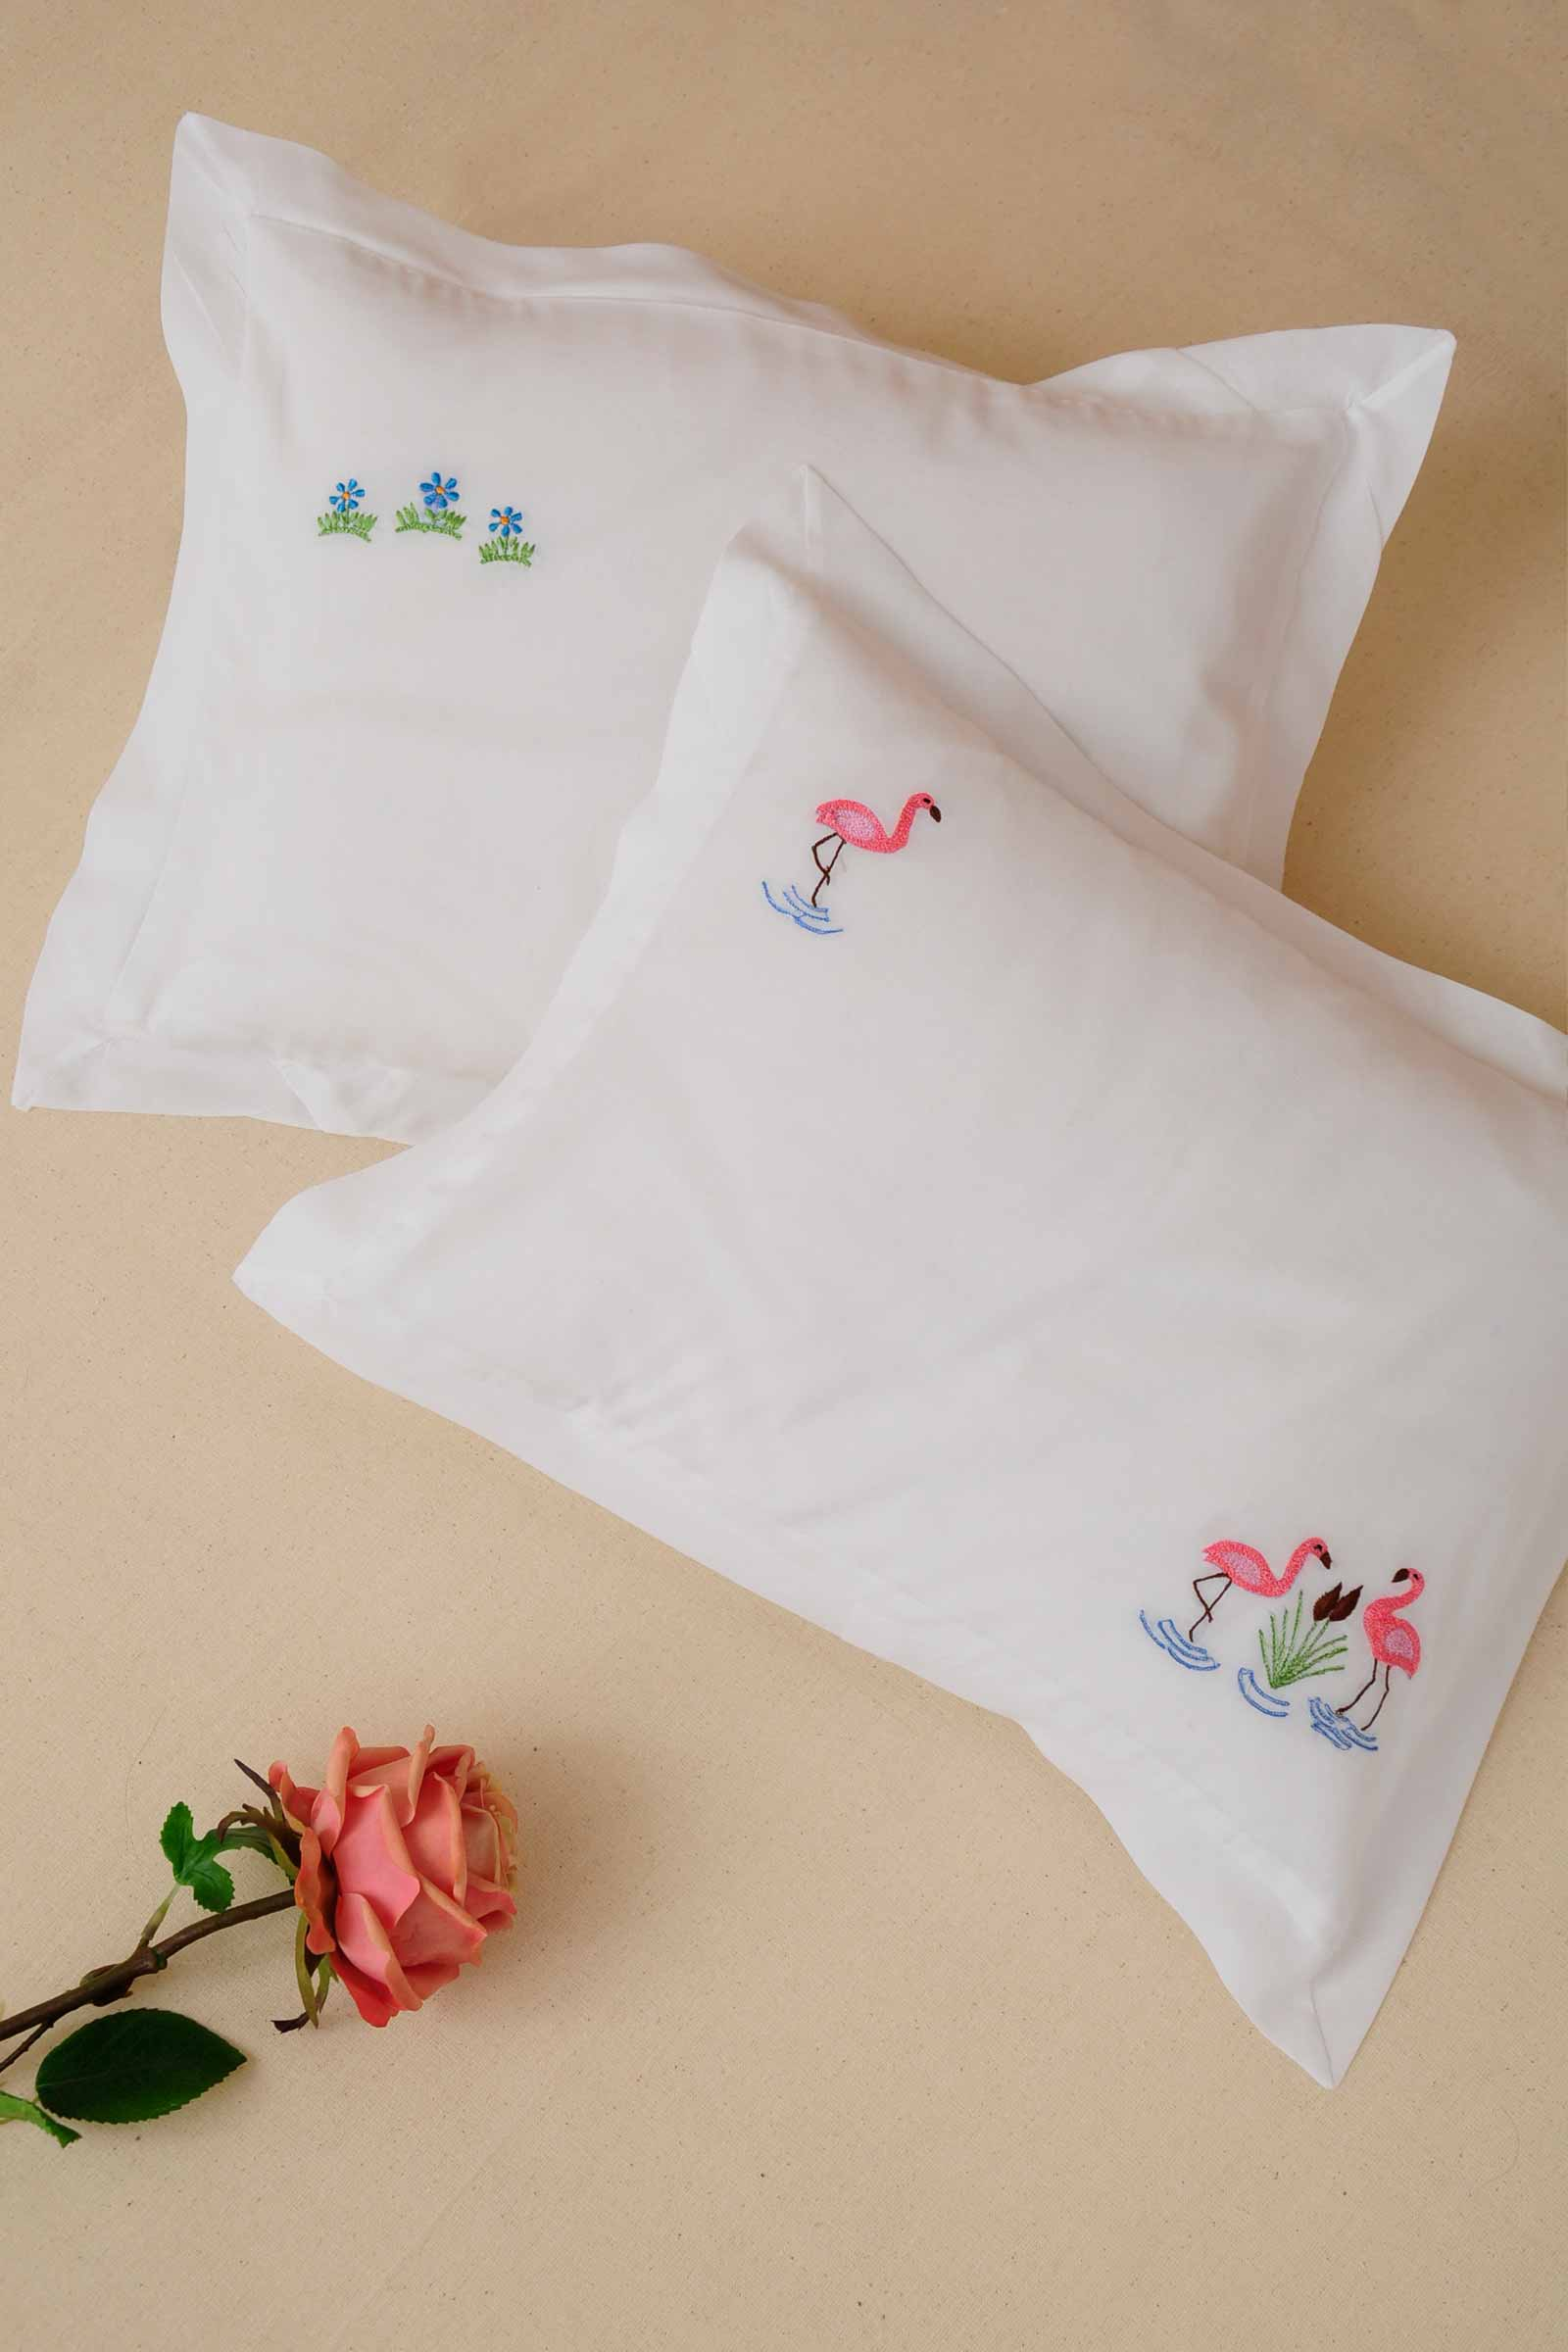 Farm house flamingo pillow cover set of 2